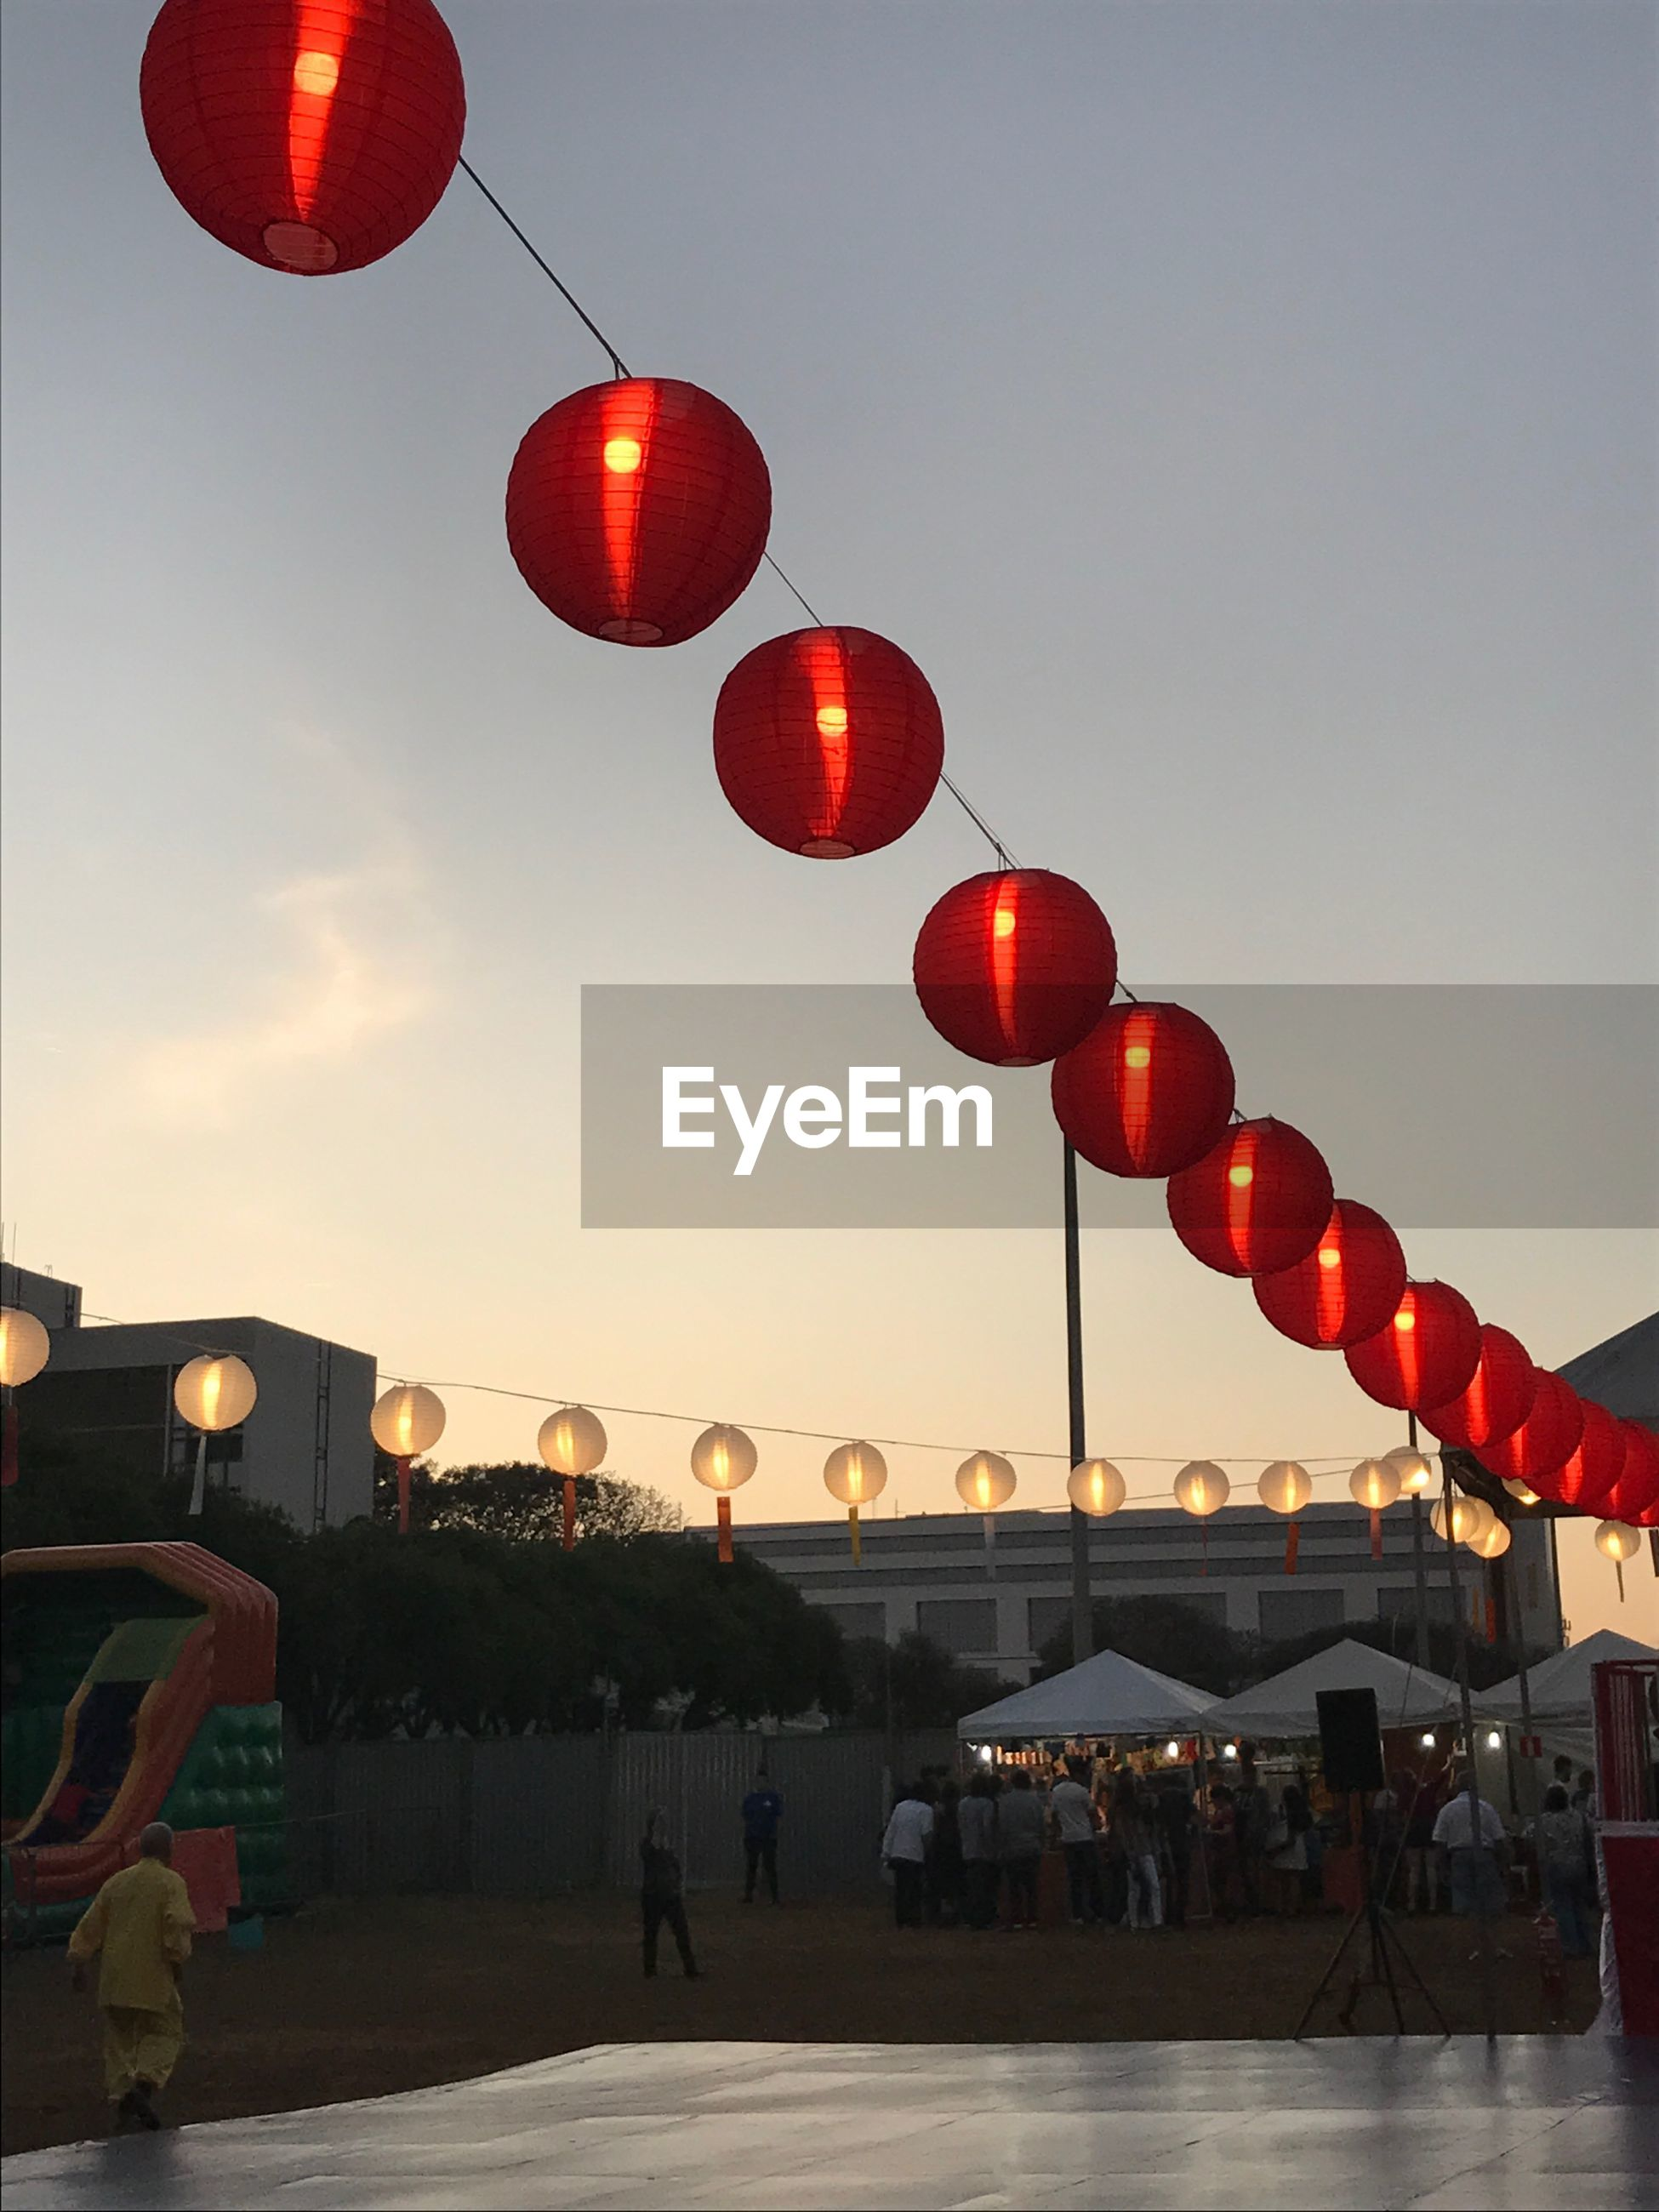 sky, built structure, lighting equipment, architecture, building exterior, illuminated, red, incidental people, nature, lantern, hanging, transportation, low angle view, outdoors, chinese lantern, city, dusk, in a row, street, light, chinese lantern festival